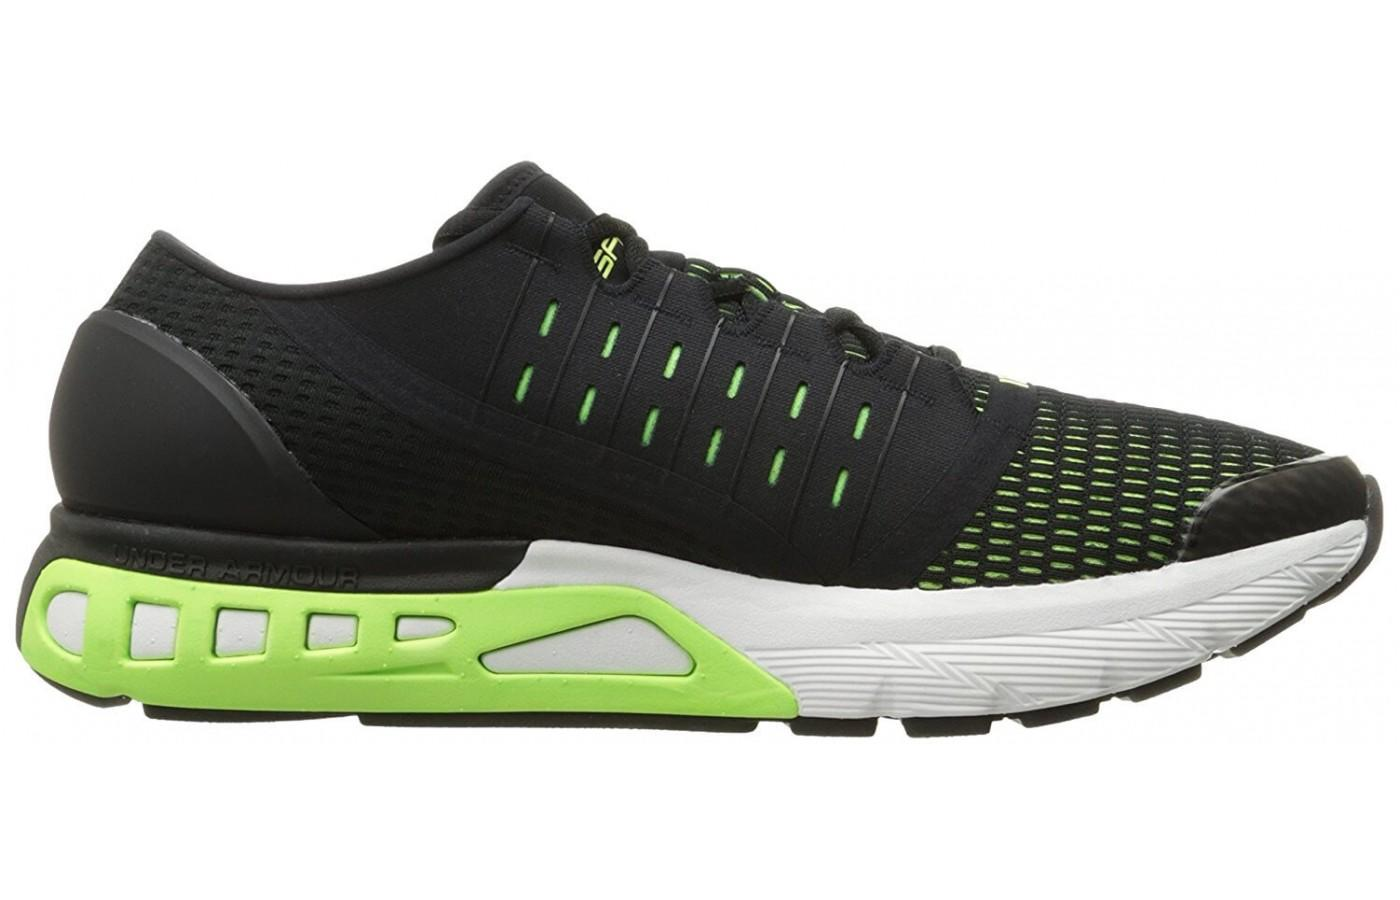 An 8 mm heel drop helps support your heels while wearing these Under Armour shoes.